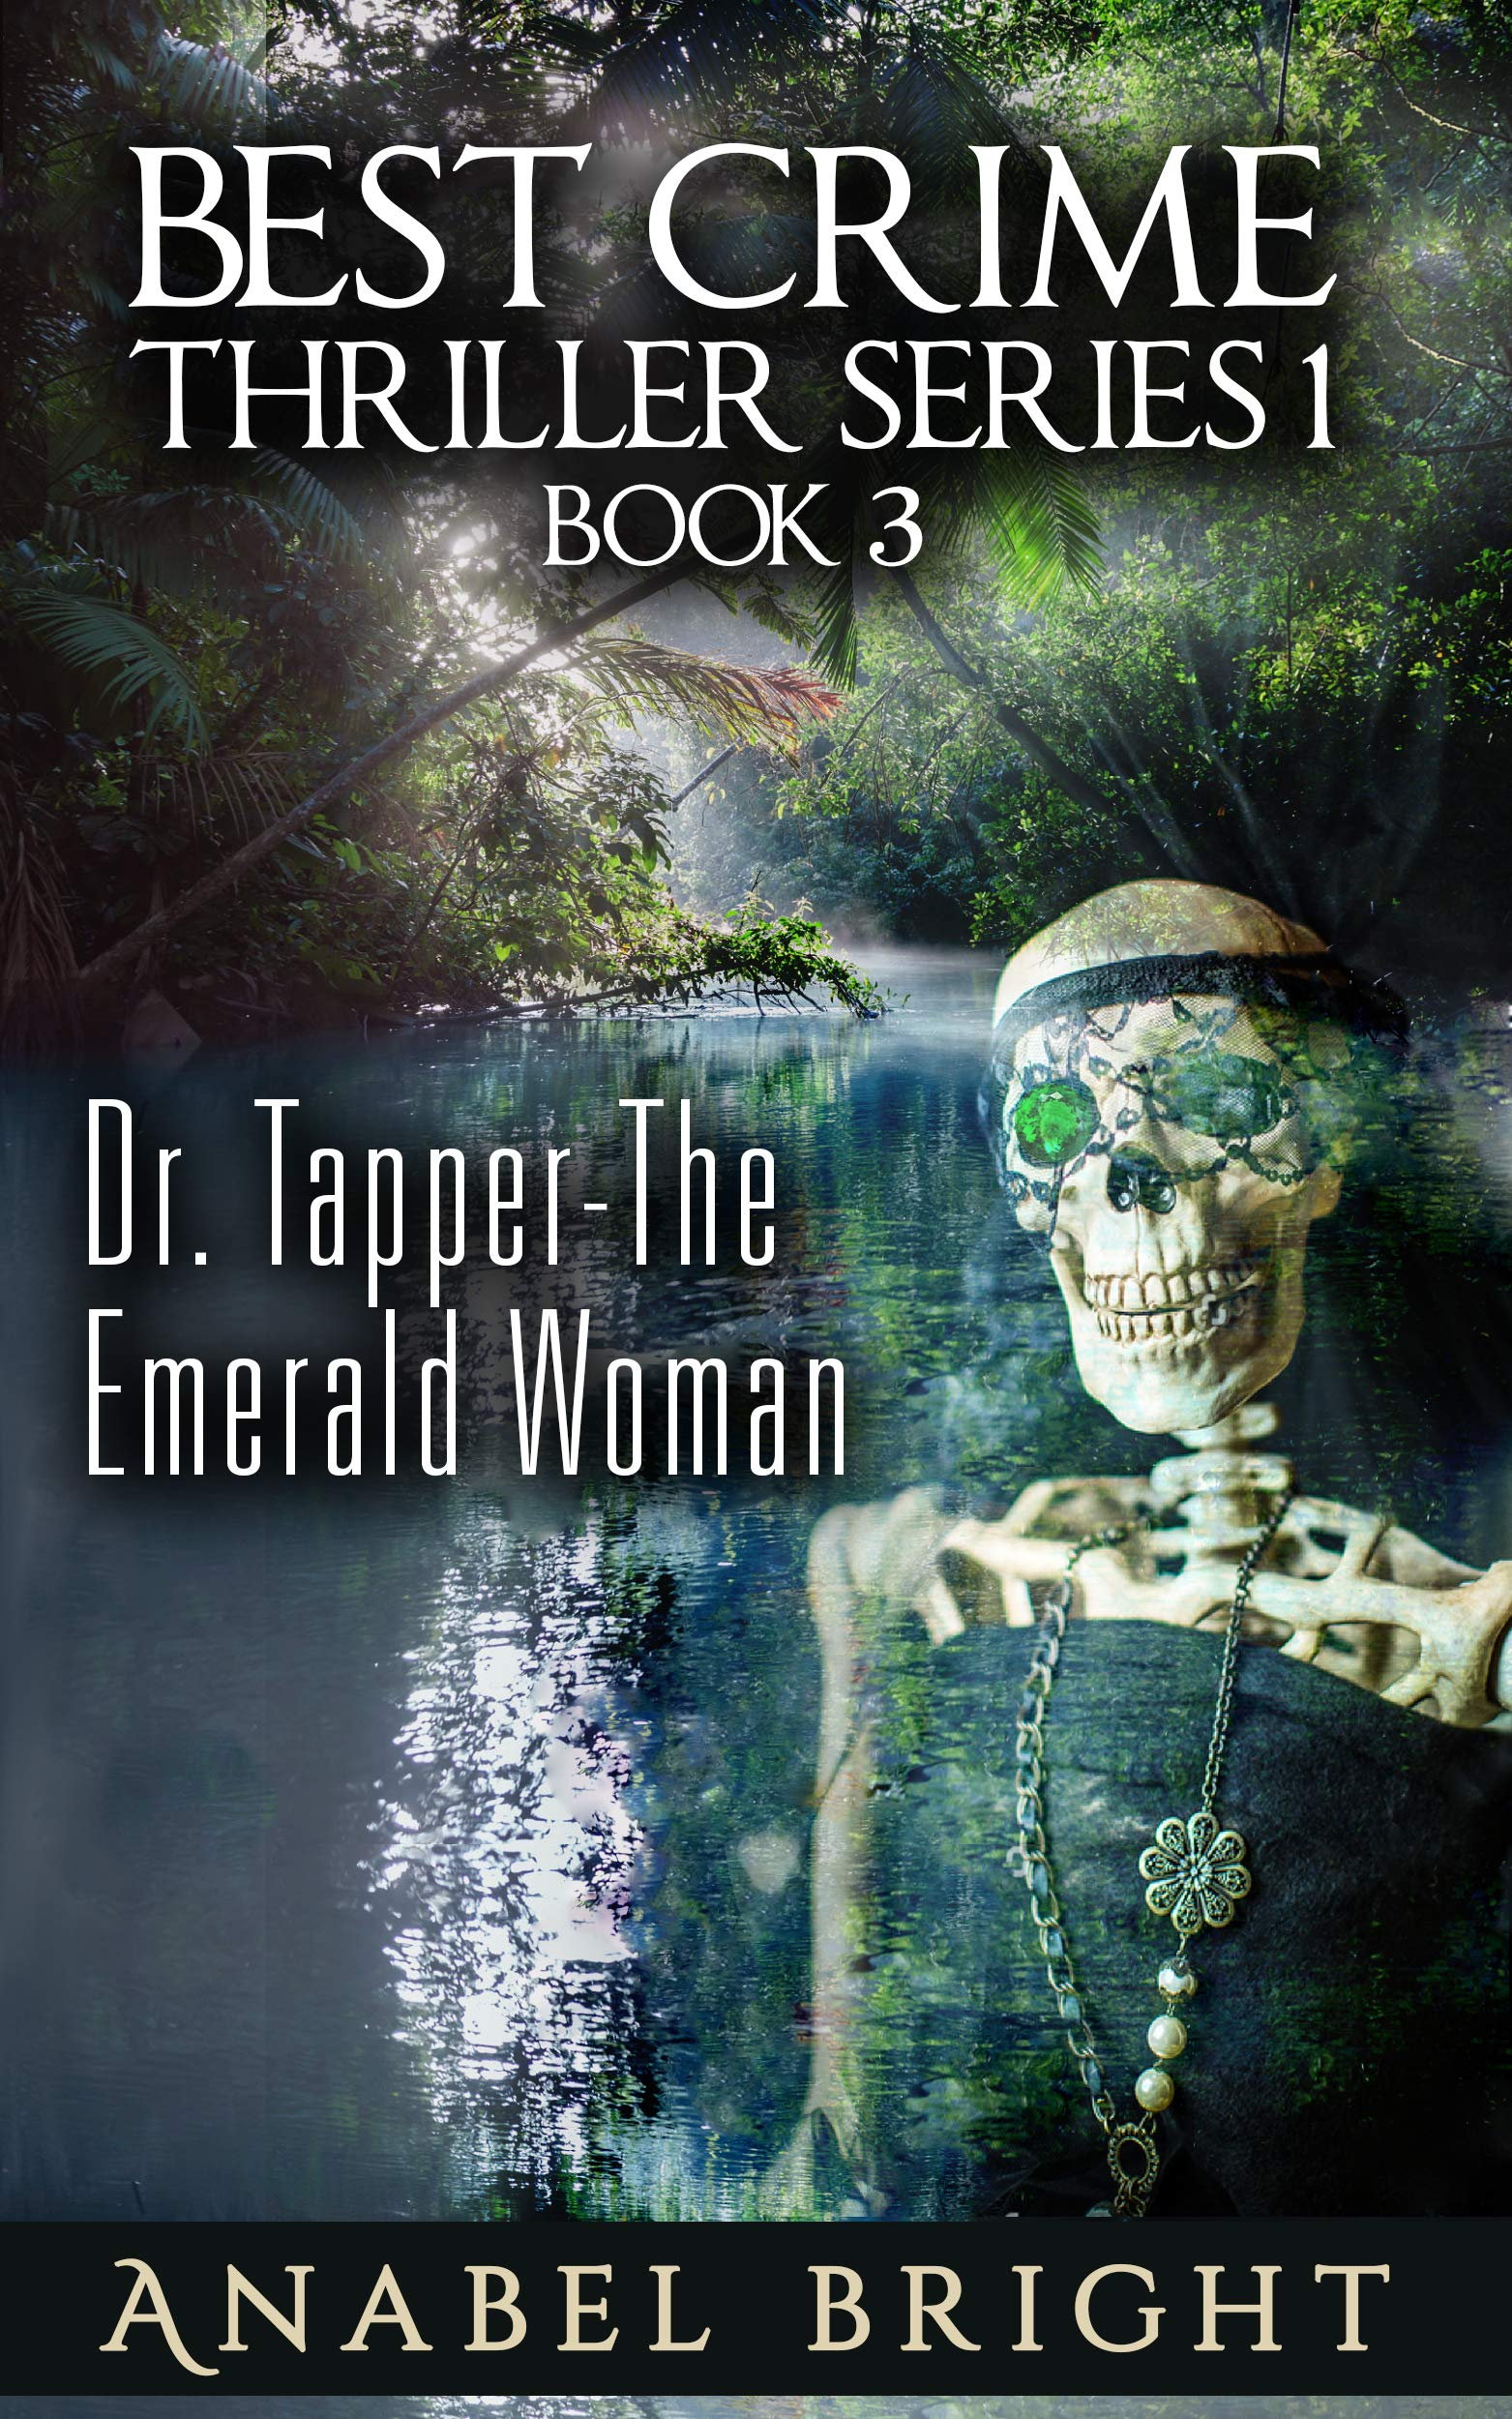 """Dr. Tapper- The Emerald Woman: """"Dr. Tapper will need to solve the mystery of skeleton of the Emerald Woman's presence along the banks of the Orinoco River ... (Best Crime Thriller Series 1 Book 3)"""